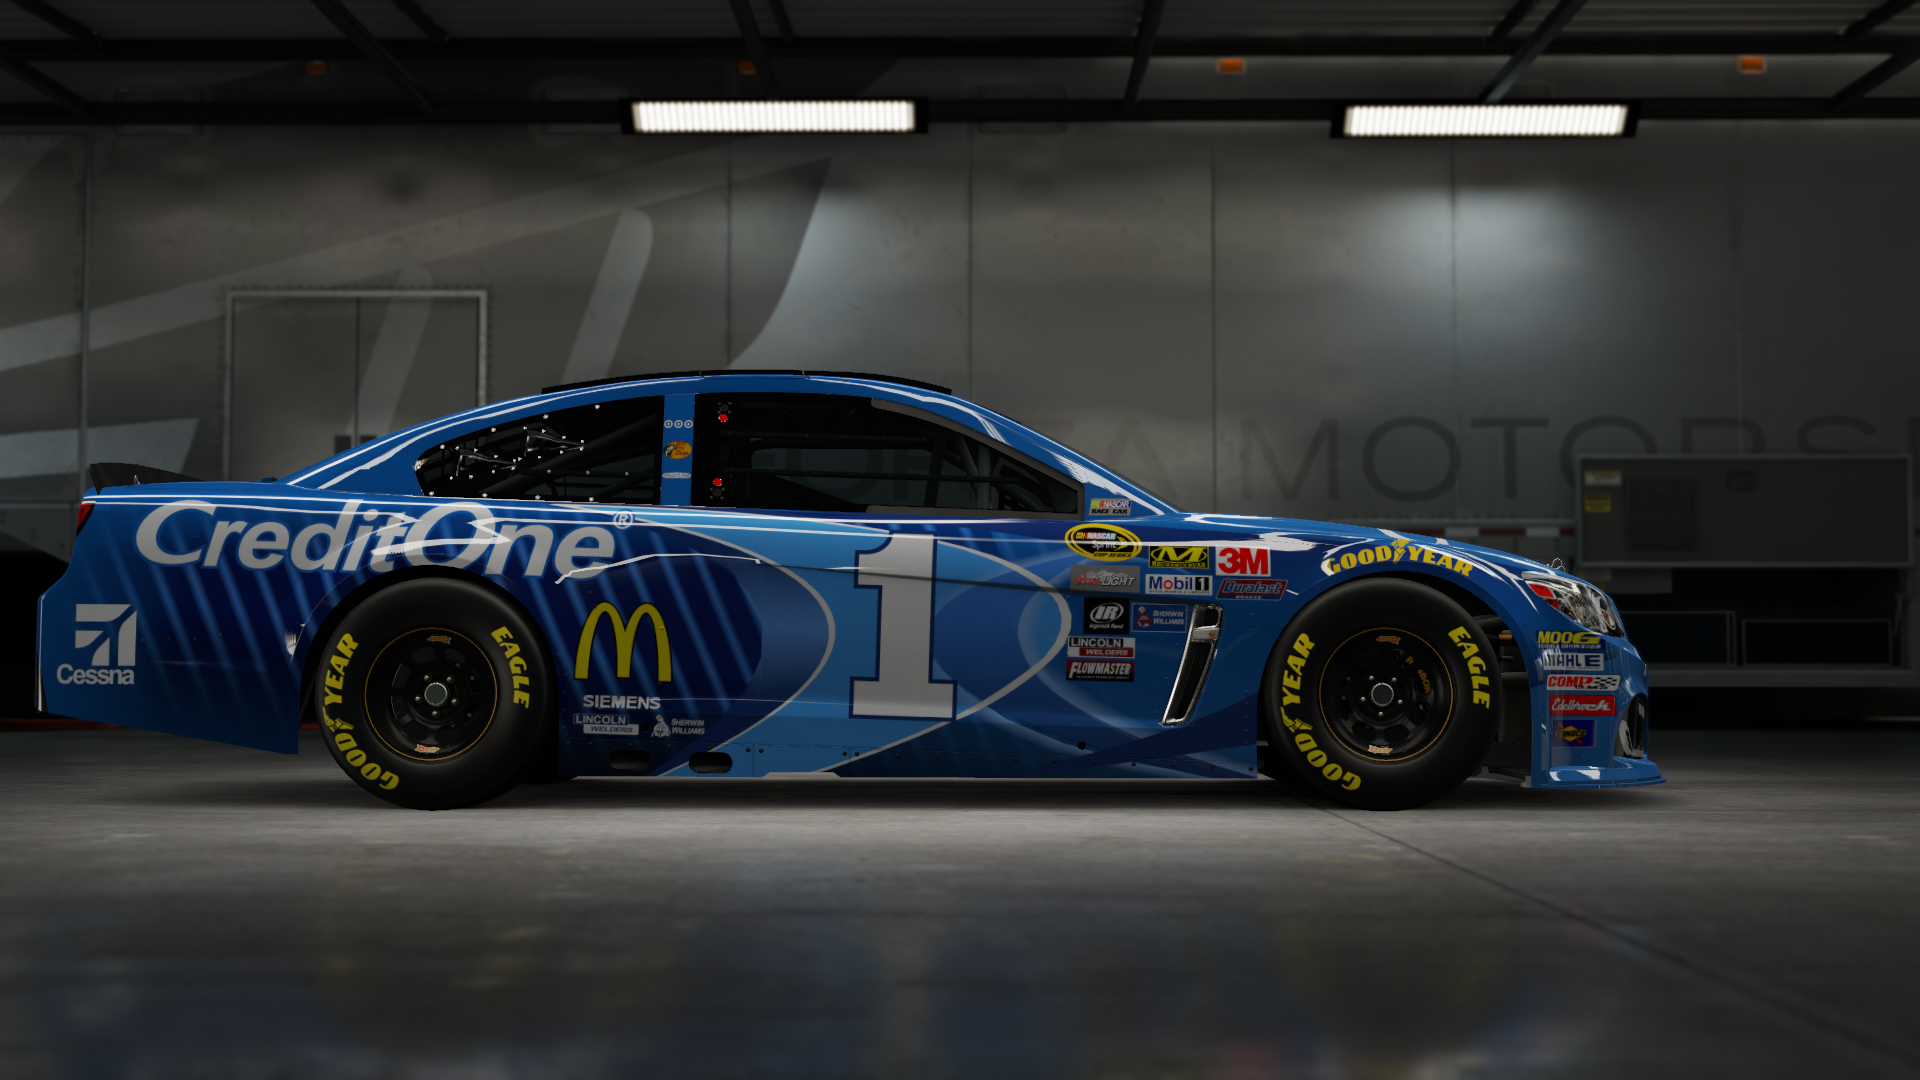 On the #1 Chip Ganassi Racing McDonald's Super Sport, Made by SweedishThunder